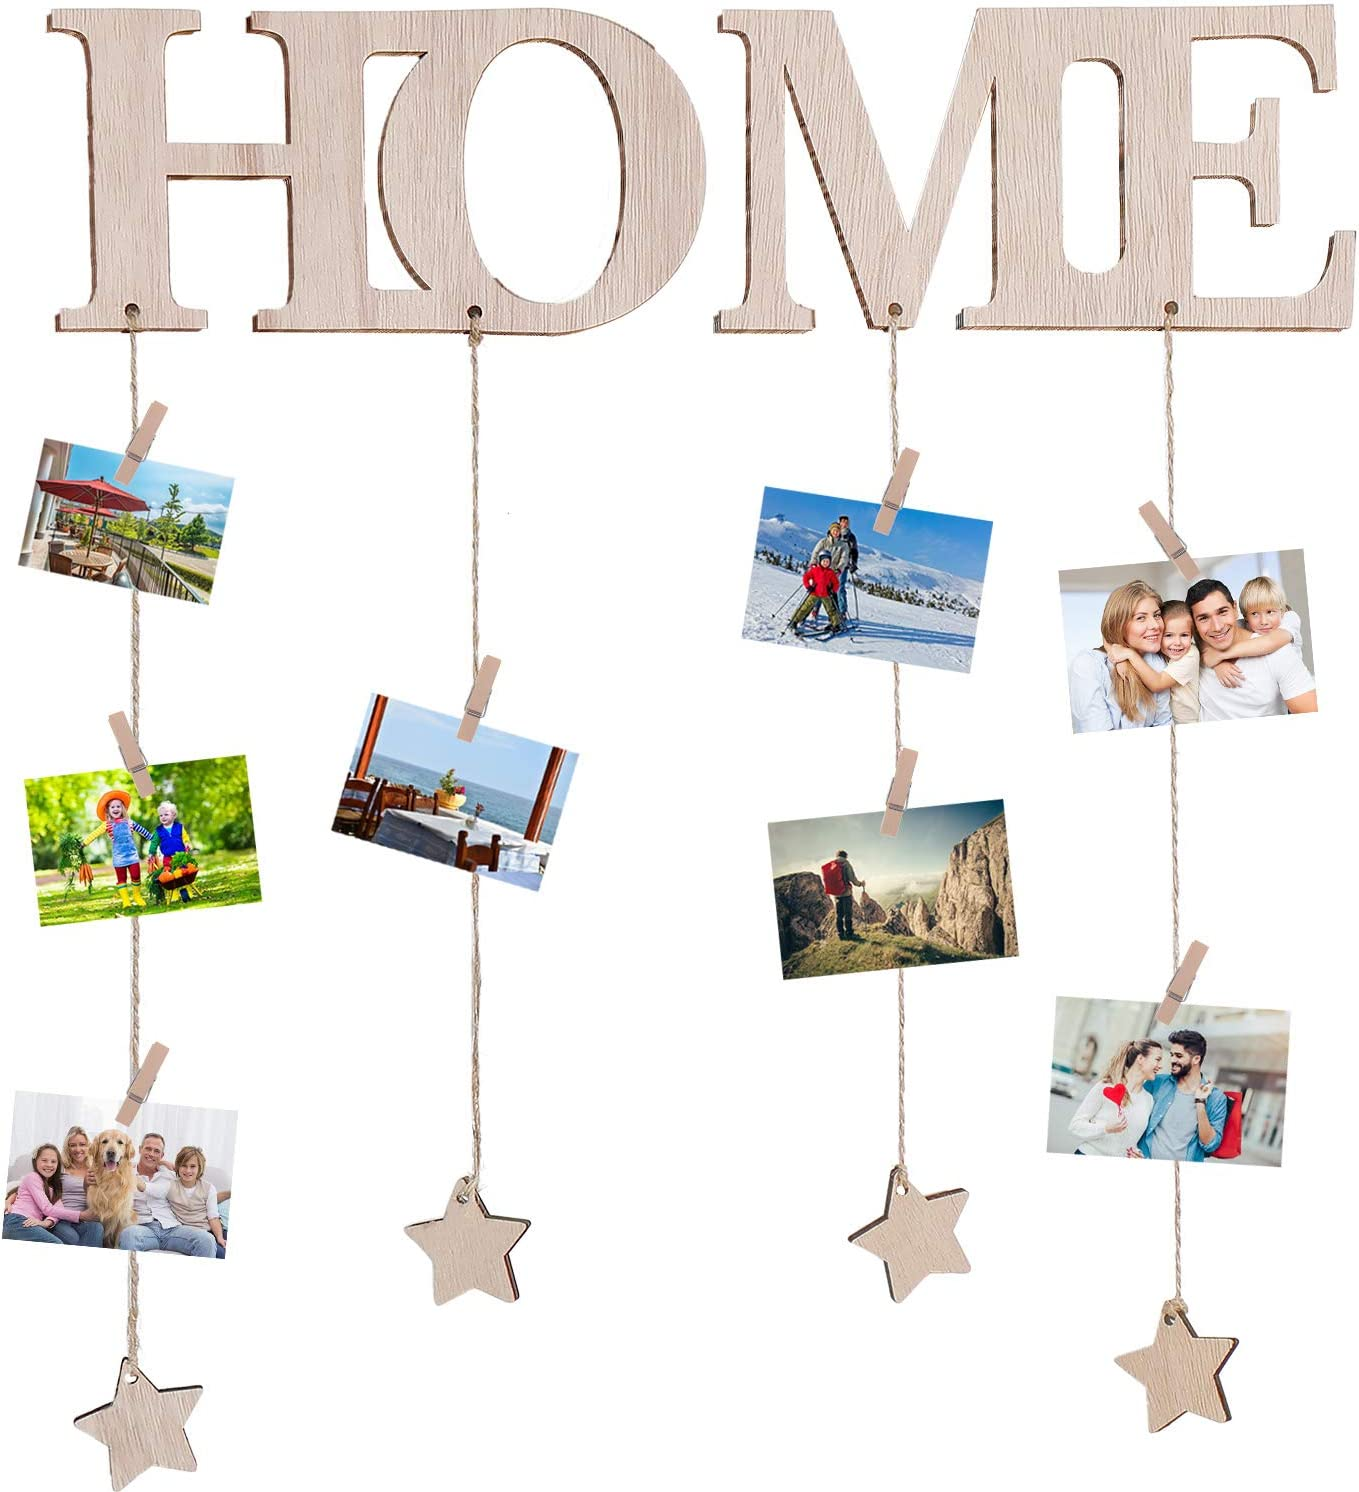 Jetec Hanging Picture Display with Clips Wood Wall Home Photo Display Board Decor Picture Board String Picture Hanger Frame and Photo Collage Organizer for Wall Room Decor